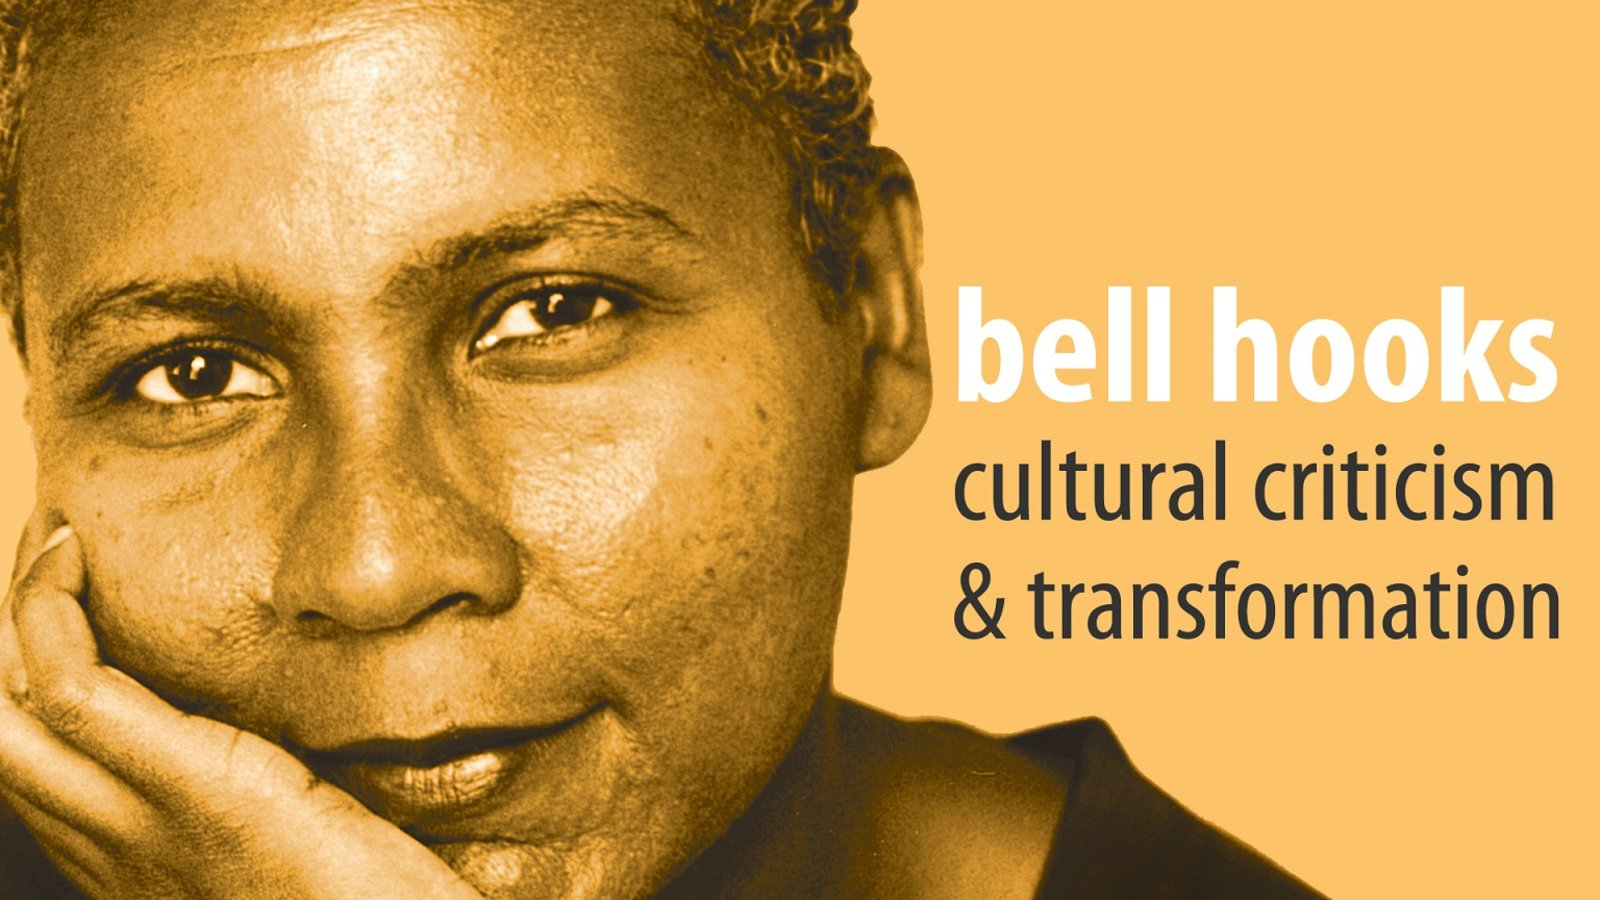 SVA Faculty Book Club: bell hooks: Cultural Criticism & Transformation